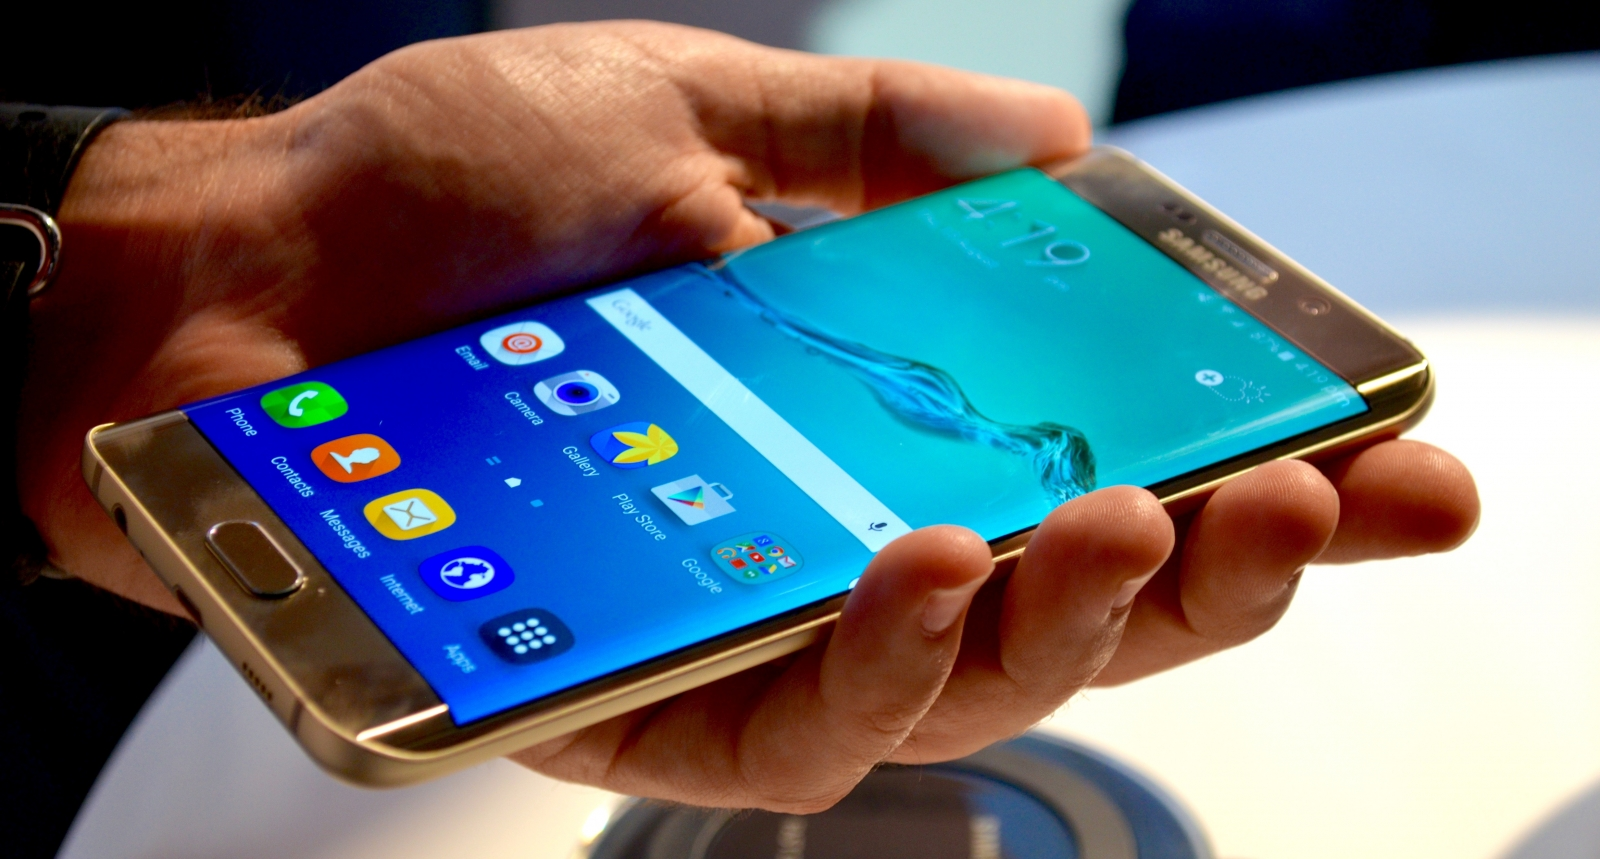 Samsung Galaxy S6 edge Plus hands-on: Is bigger better?